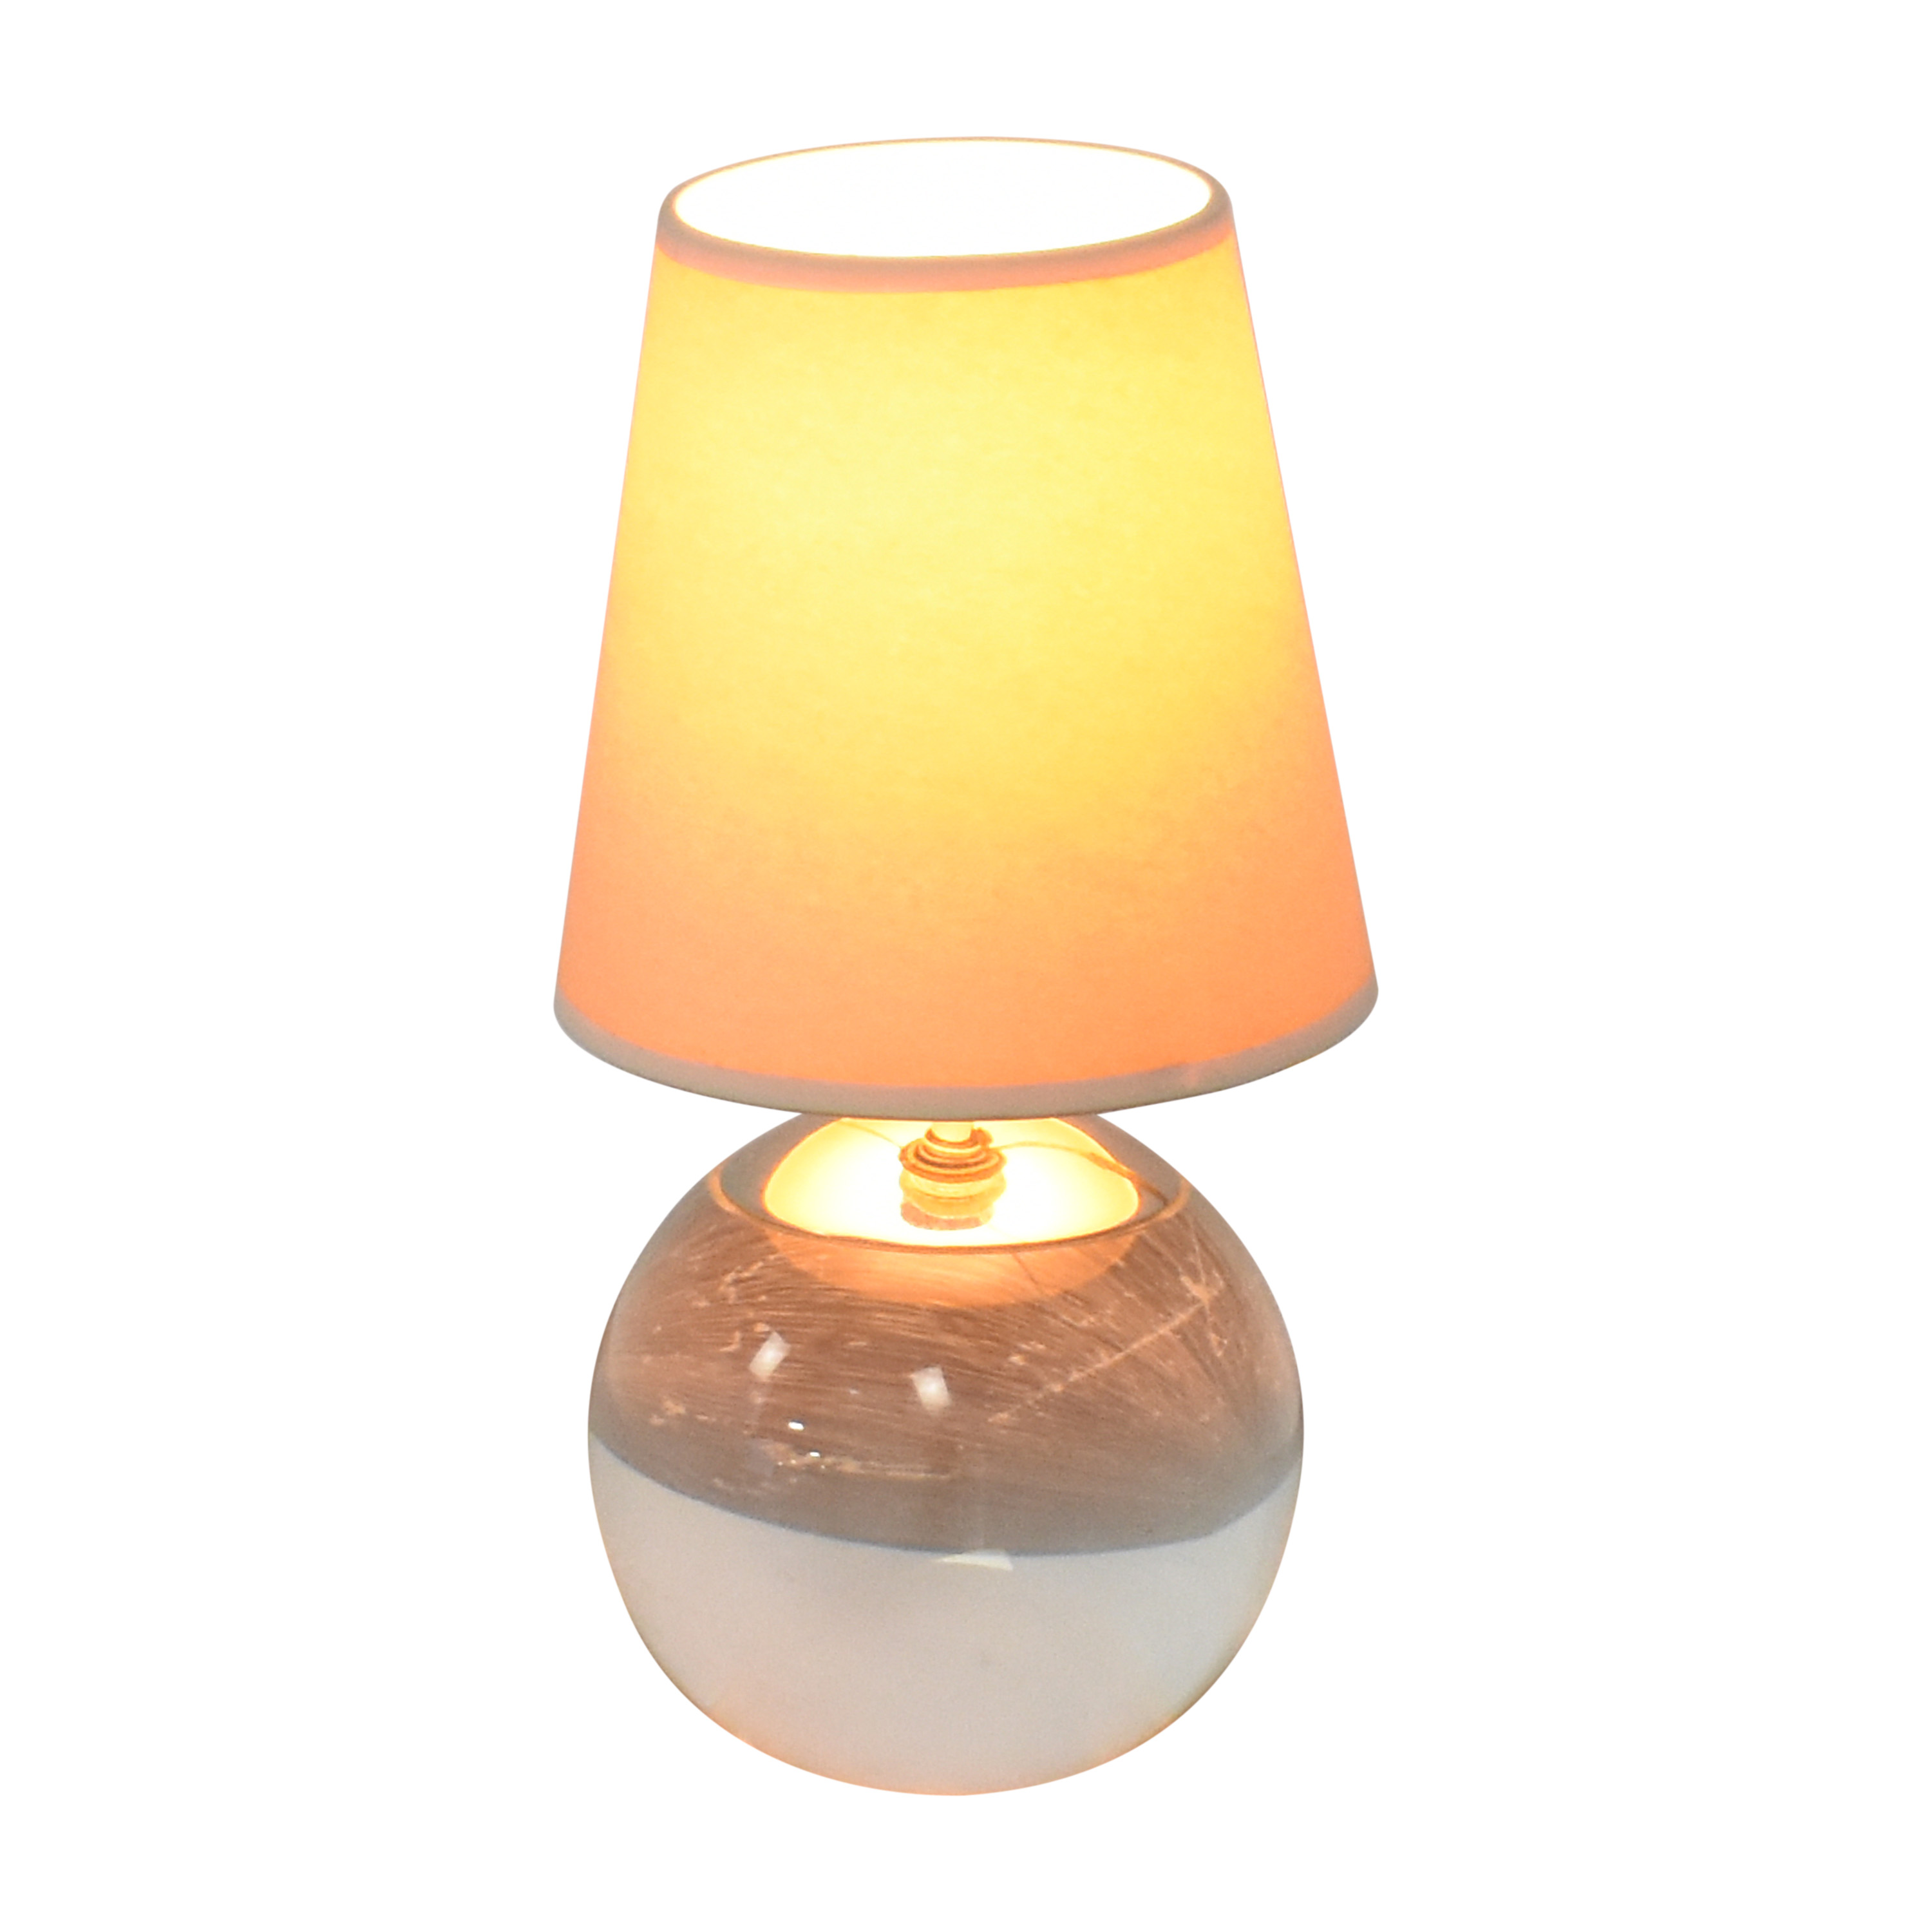 buy Williams Sonoma Round Base Table Lamp Williams Sonoma Decor